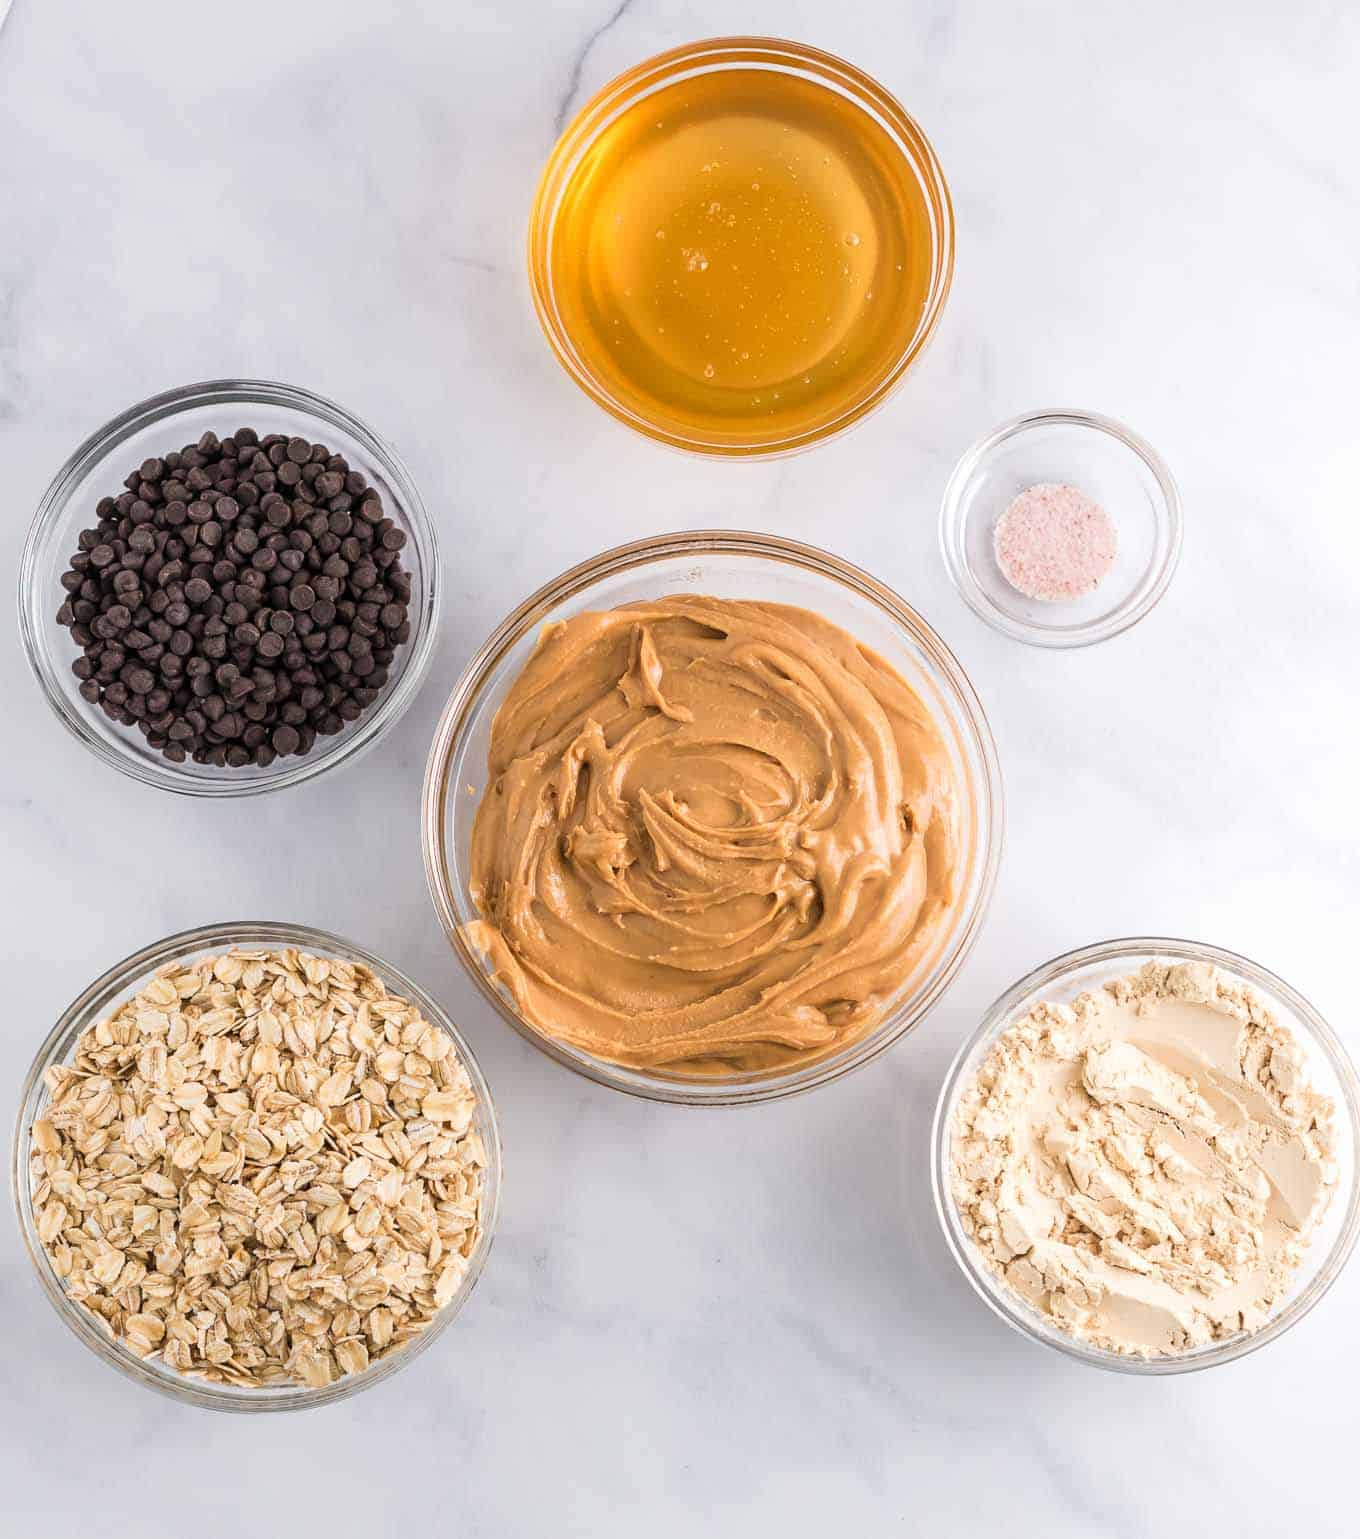 ingredients overhead picture - peanut butter, protein powder, salt, oats, honey, and mini chocolate chips